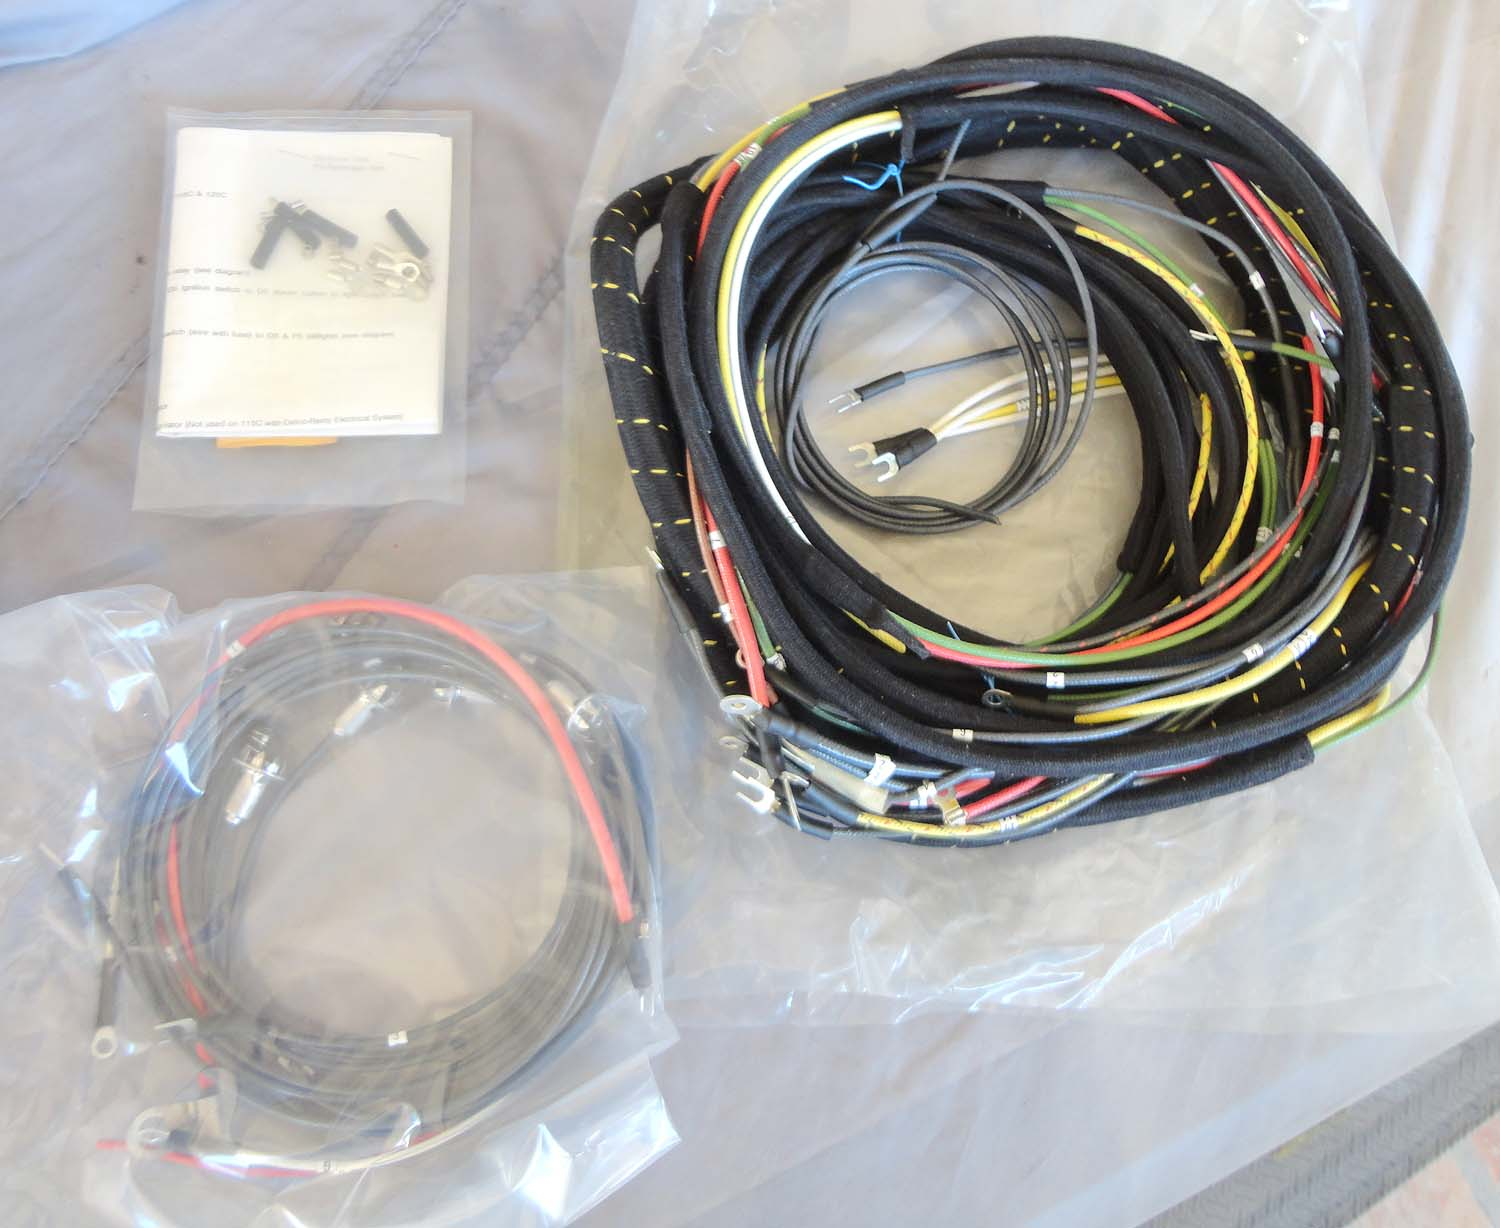 jrpackwirall.0c09d118244b4858d185d8e491986011 sold 1937 115c & ? 120c ? packard wiring harness, ynz brand cars packard wiring harness at gsmportal.co